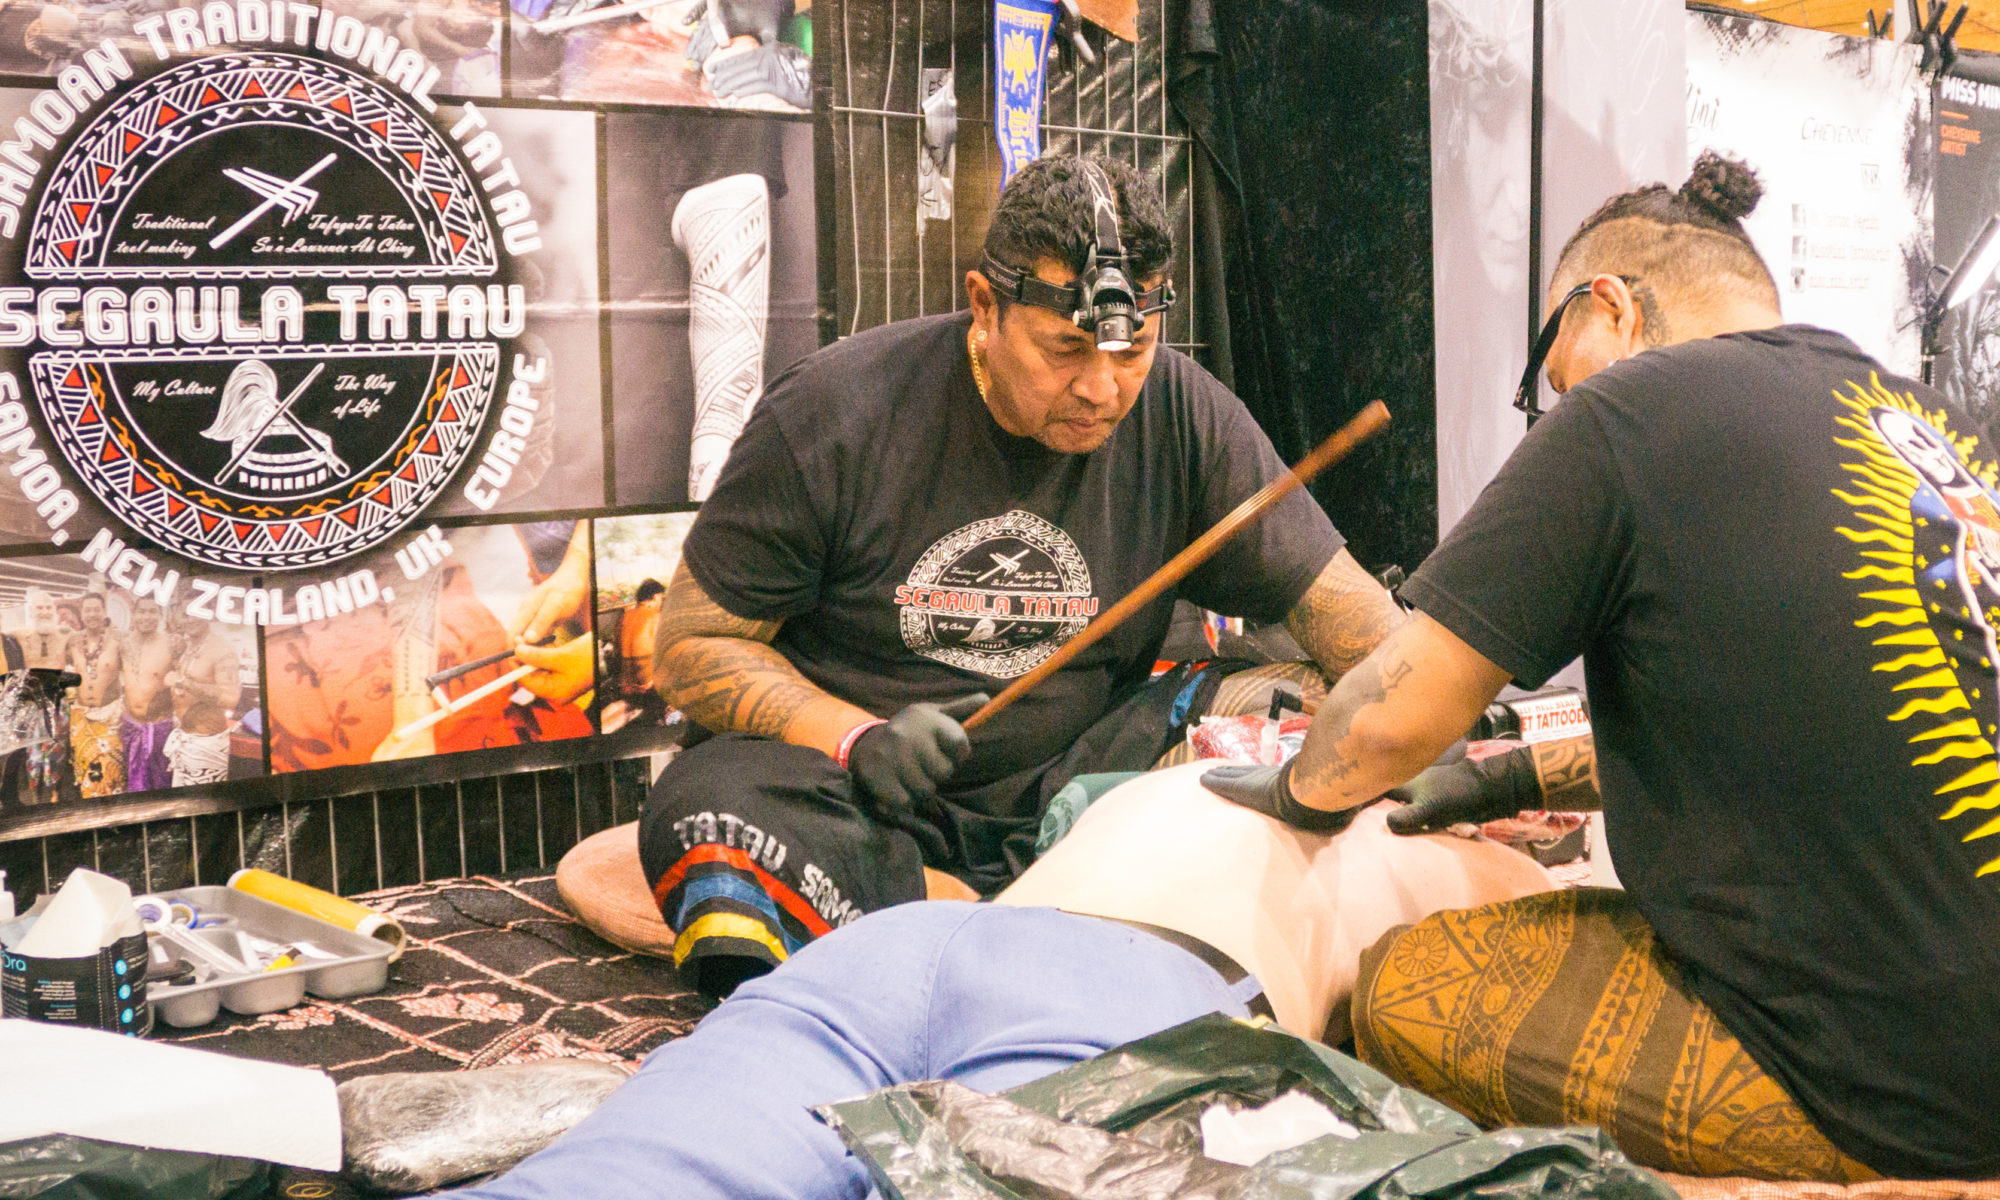 5. Tattoo Expo Nürnberg